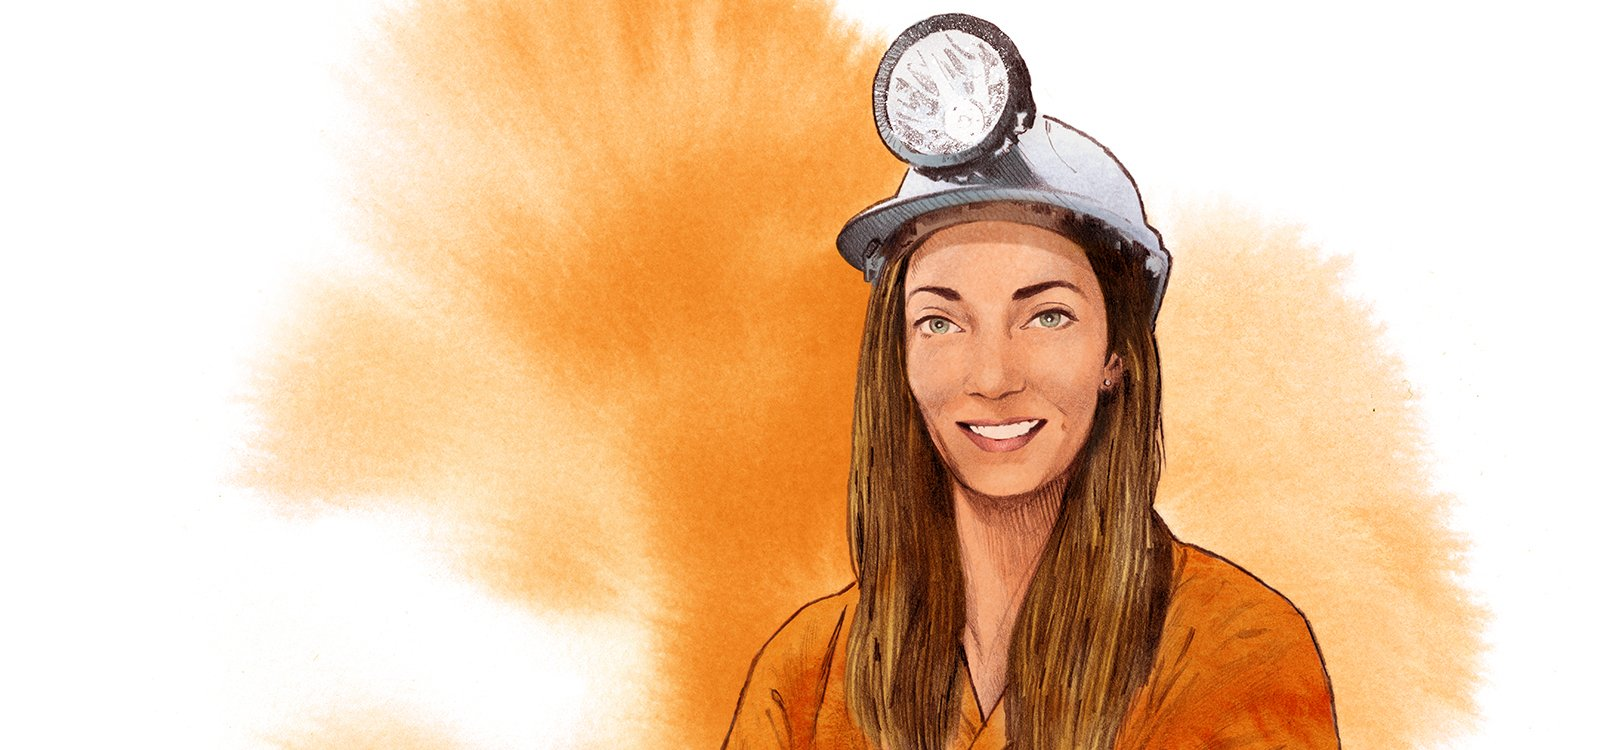 <p>Arlene Johnston turned her love of mining into a career underground, becoming the first female miner in Ireland.</p>